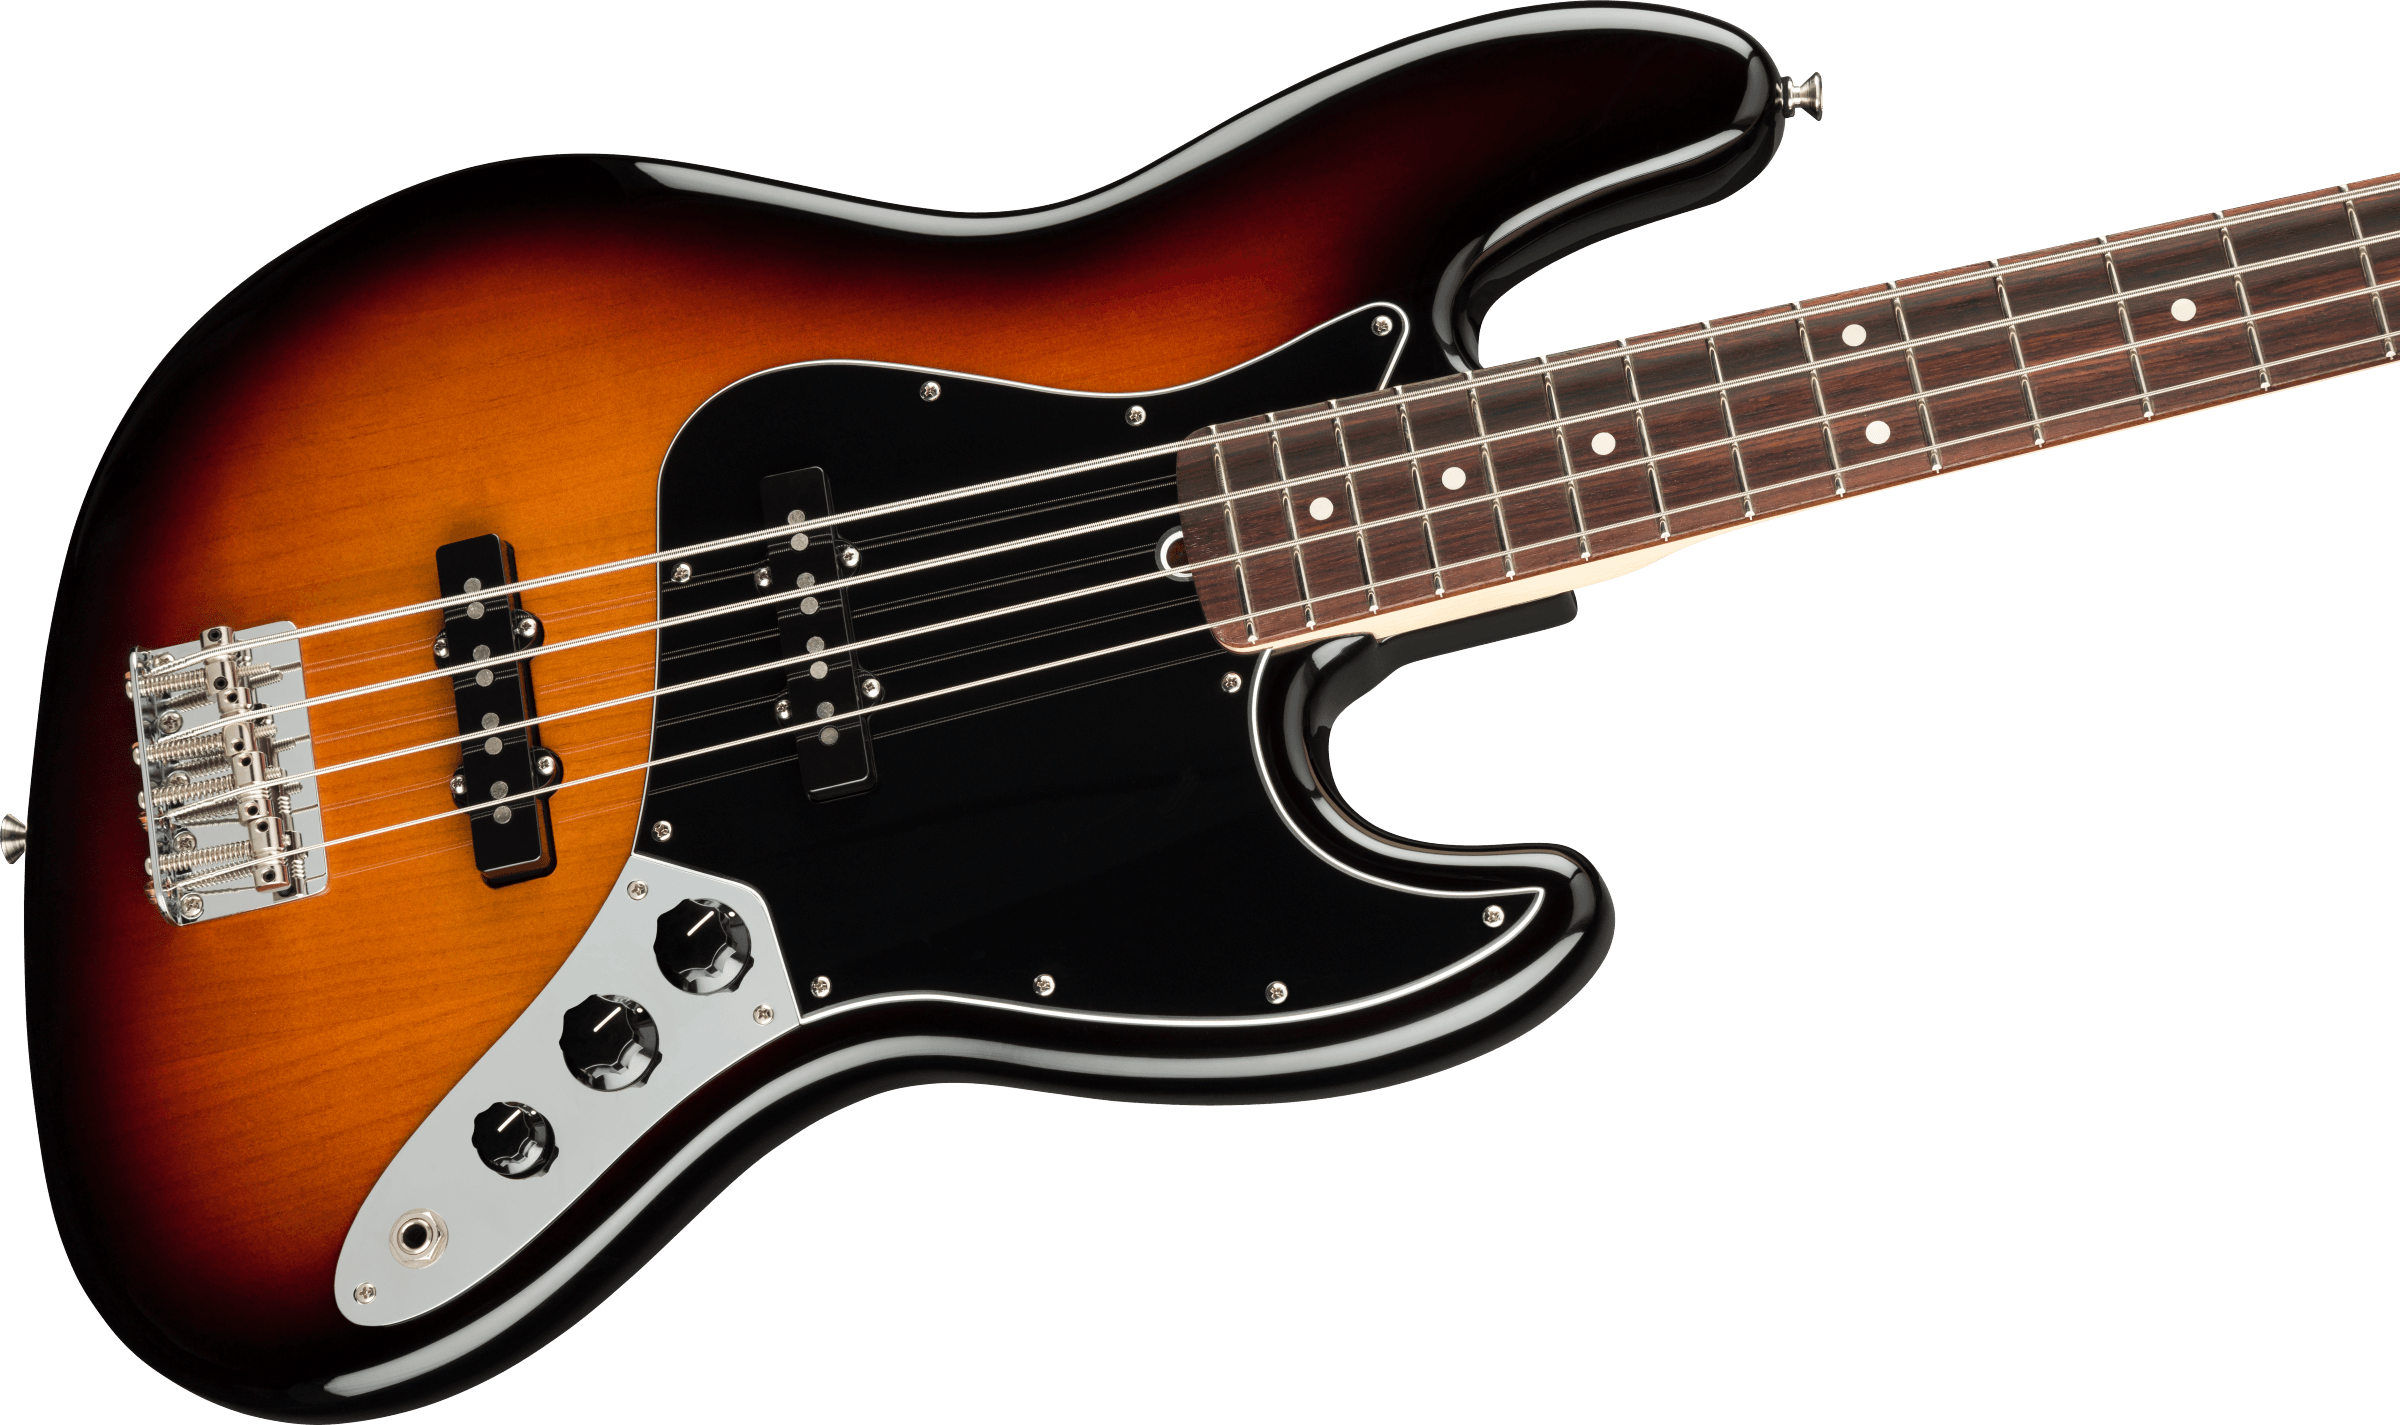 Fender American Performer Jazz Bass - 3-Color Sunburst, RW